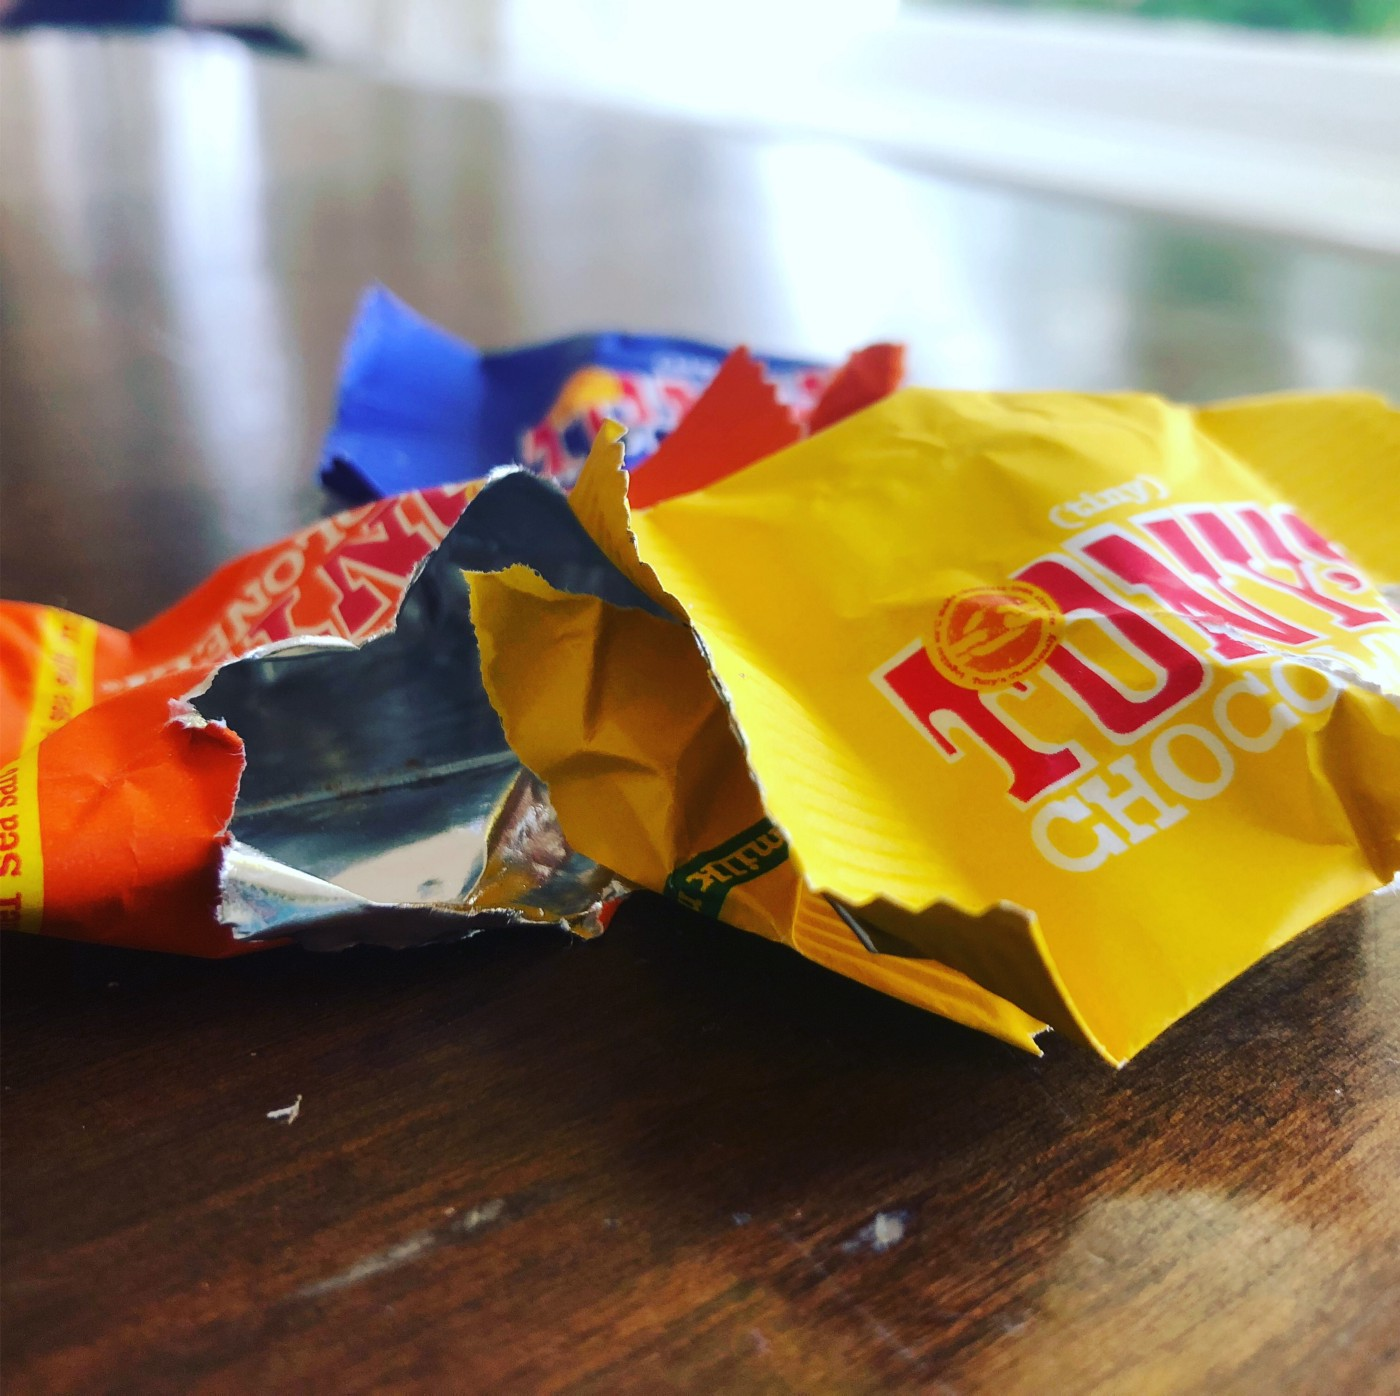 a picture of some empty Tony's chocoloney wrappers after a long day with many meetings